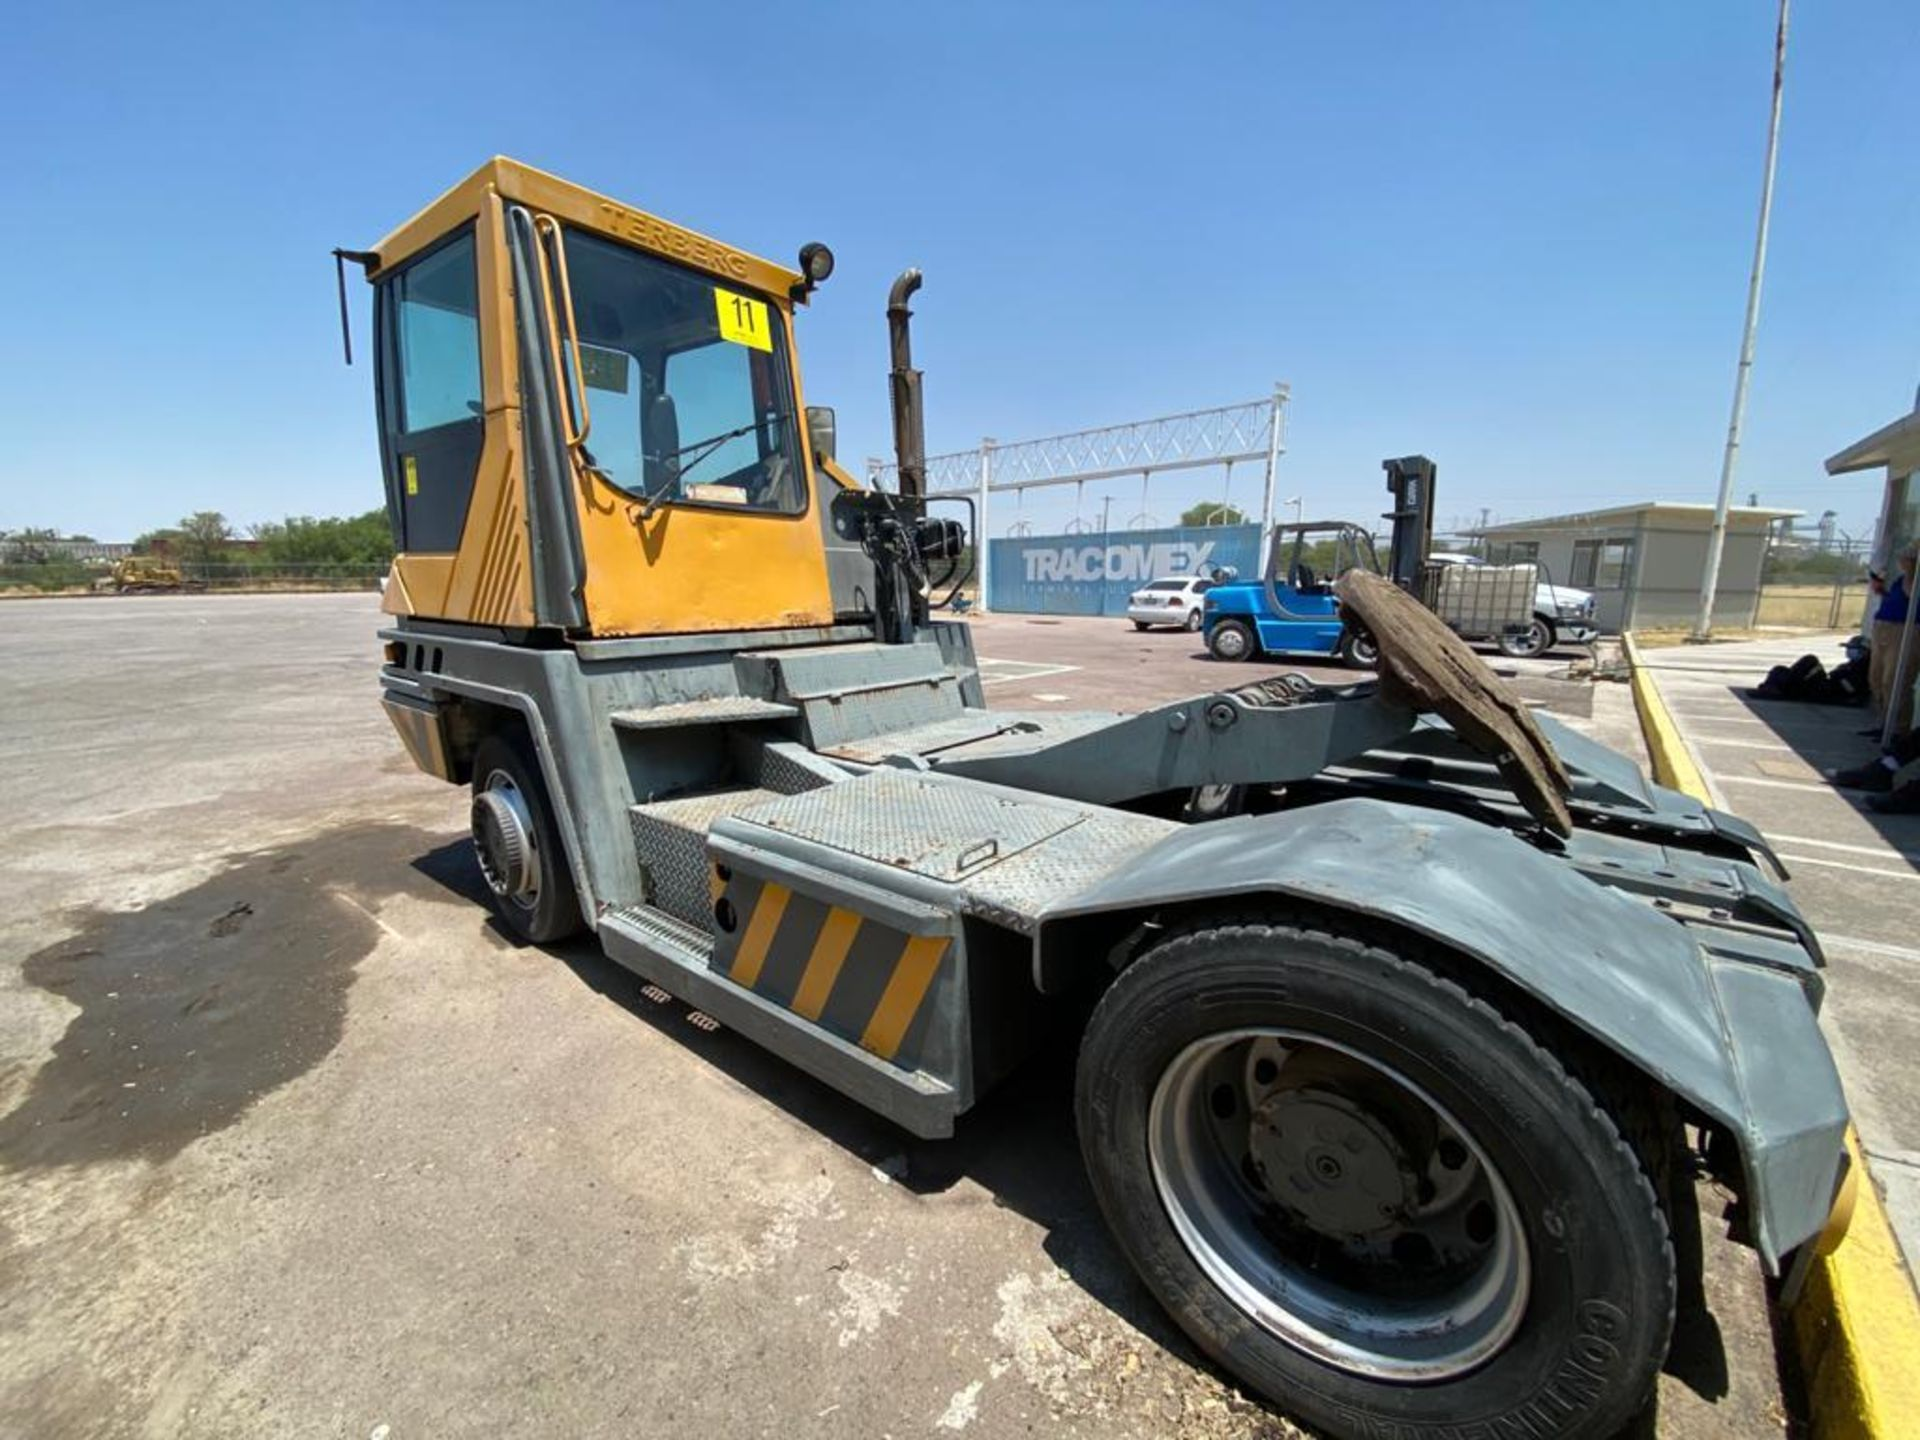 Terberg Capacity 2002 Terminal Tractor, automatic transmission, with Volvo motor - Image 32 of 57